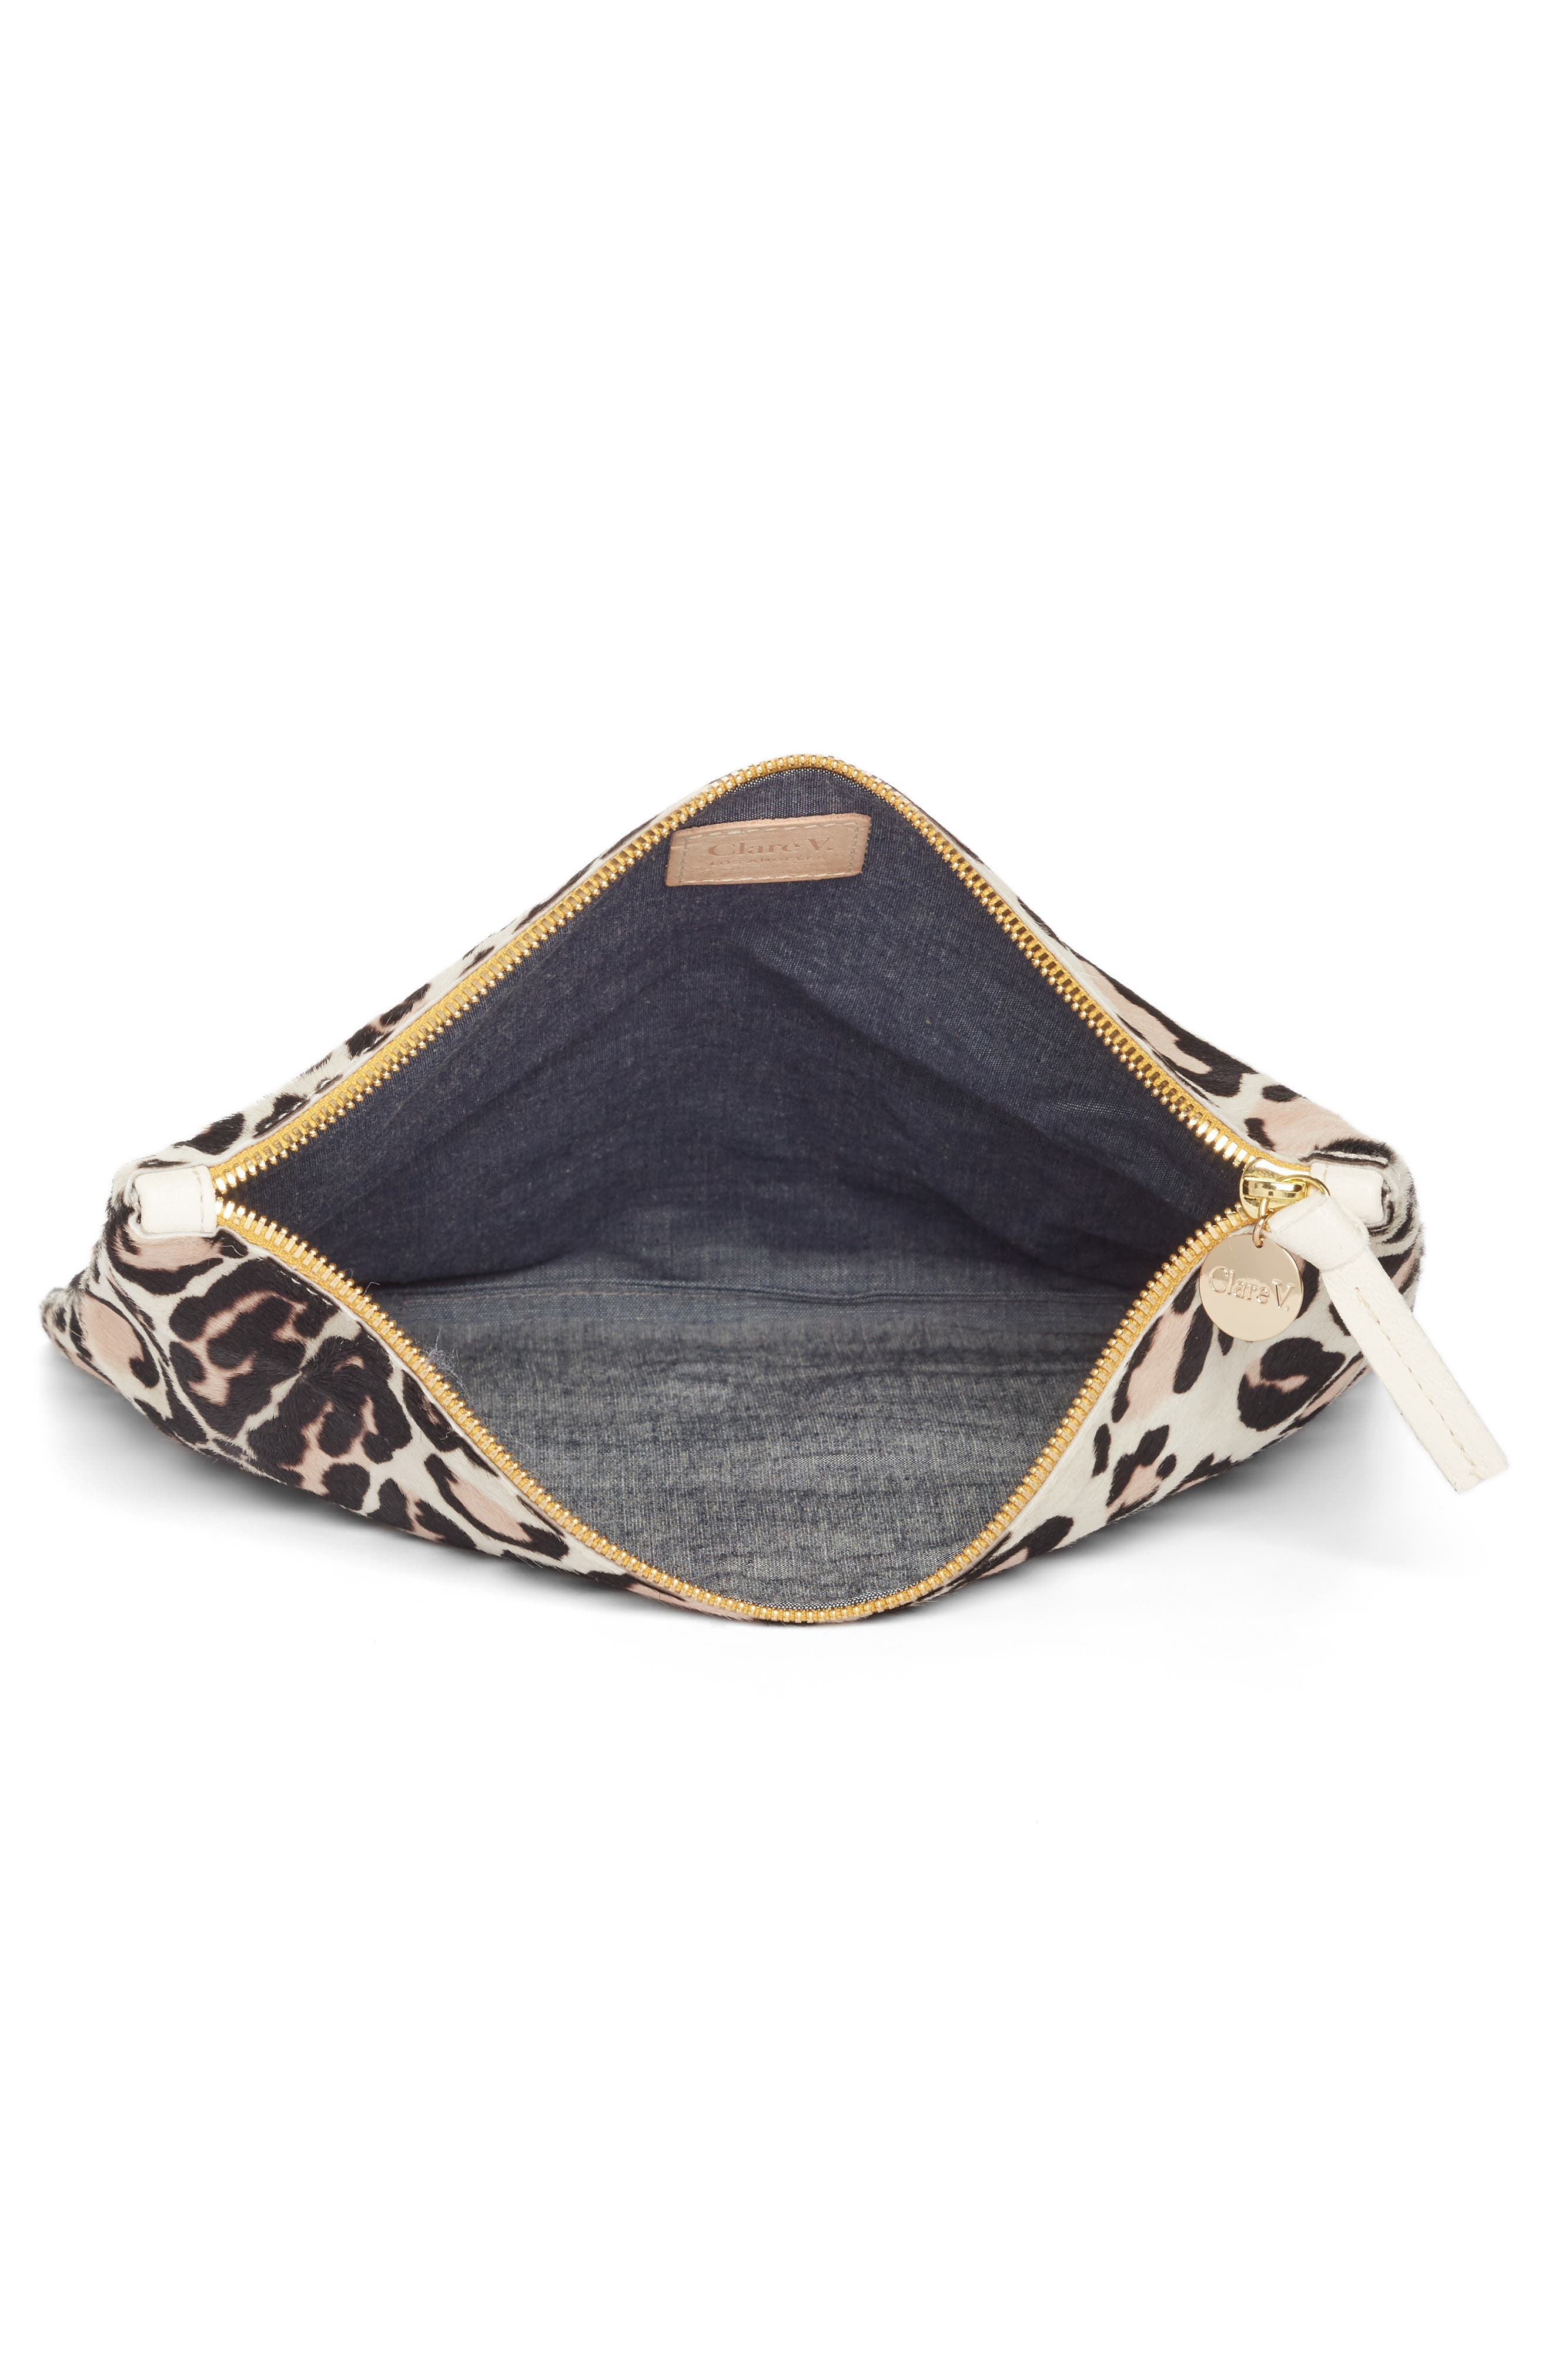 CLARE V., Genuine Calf Hair Foldover Clutch, Alternate thumbnail 3, color, 900